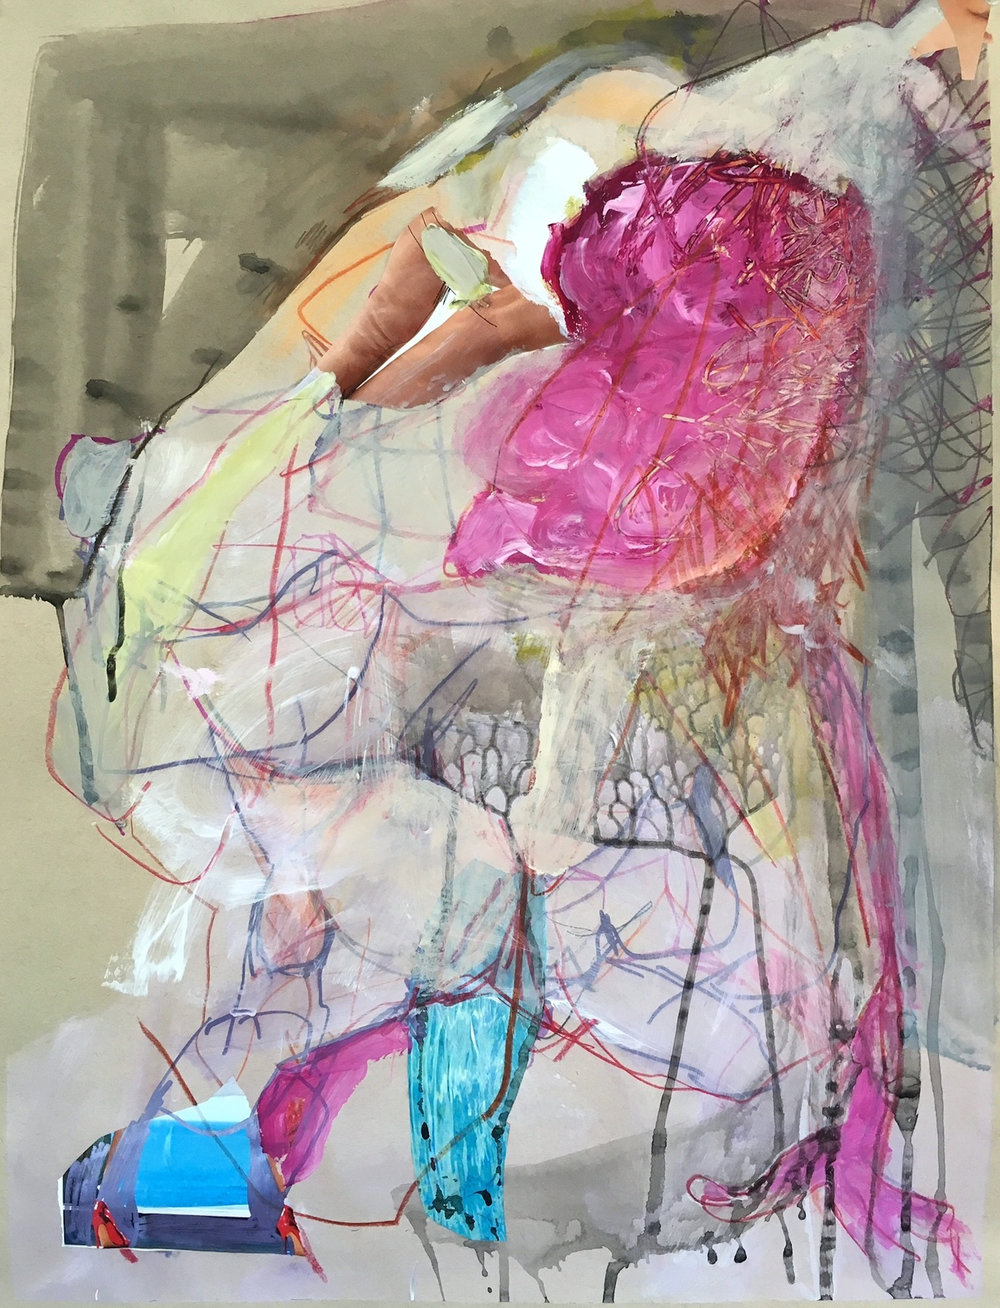 Untitled, 2016, acrylic, collage, pen on paper (Permanent Collection, Foundation Center, NYC)